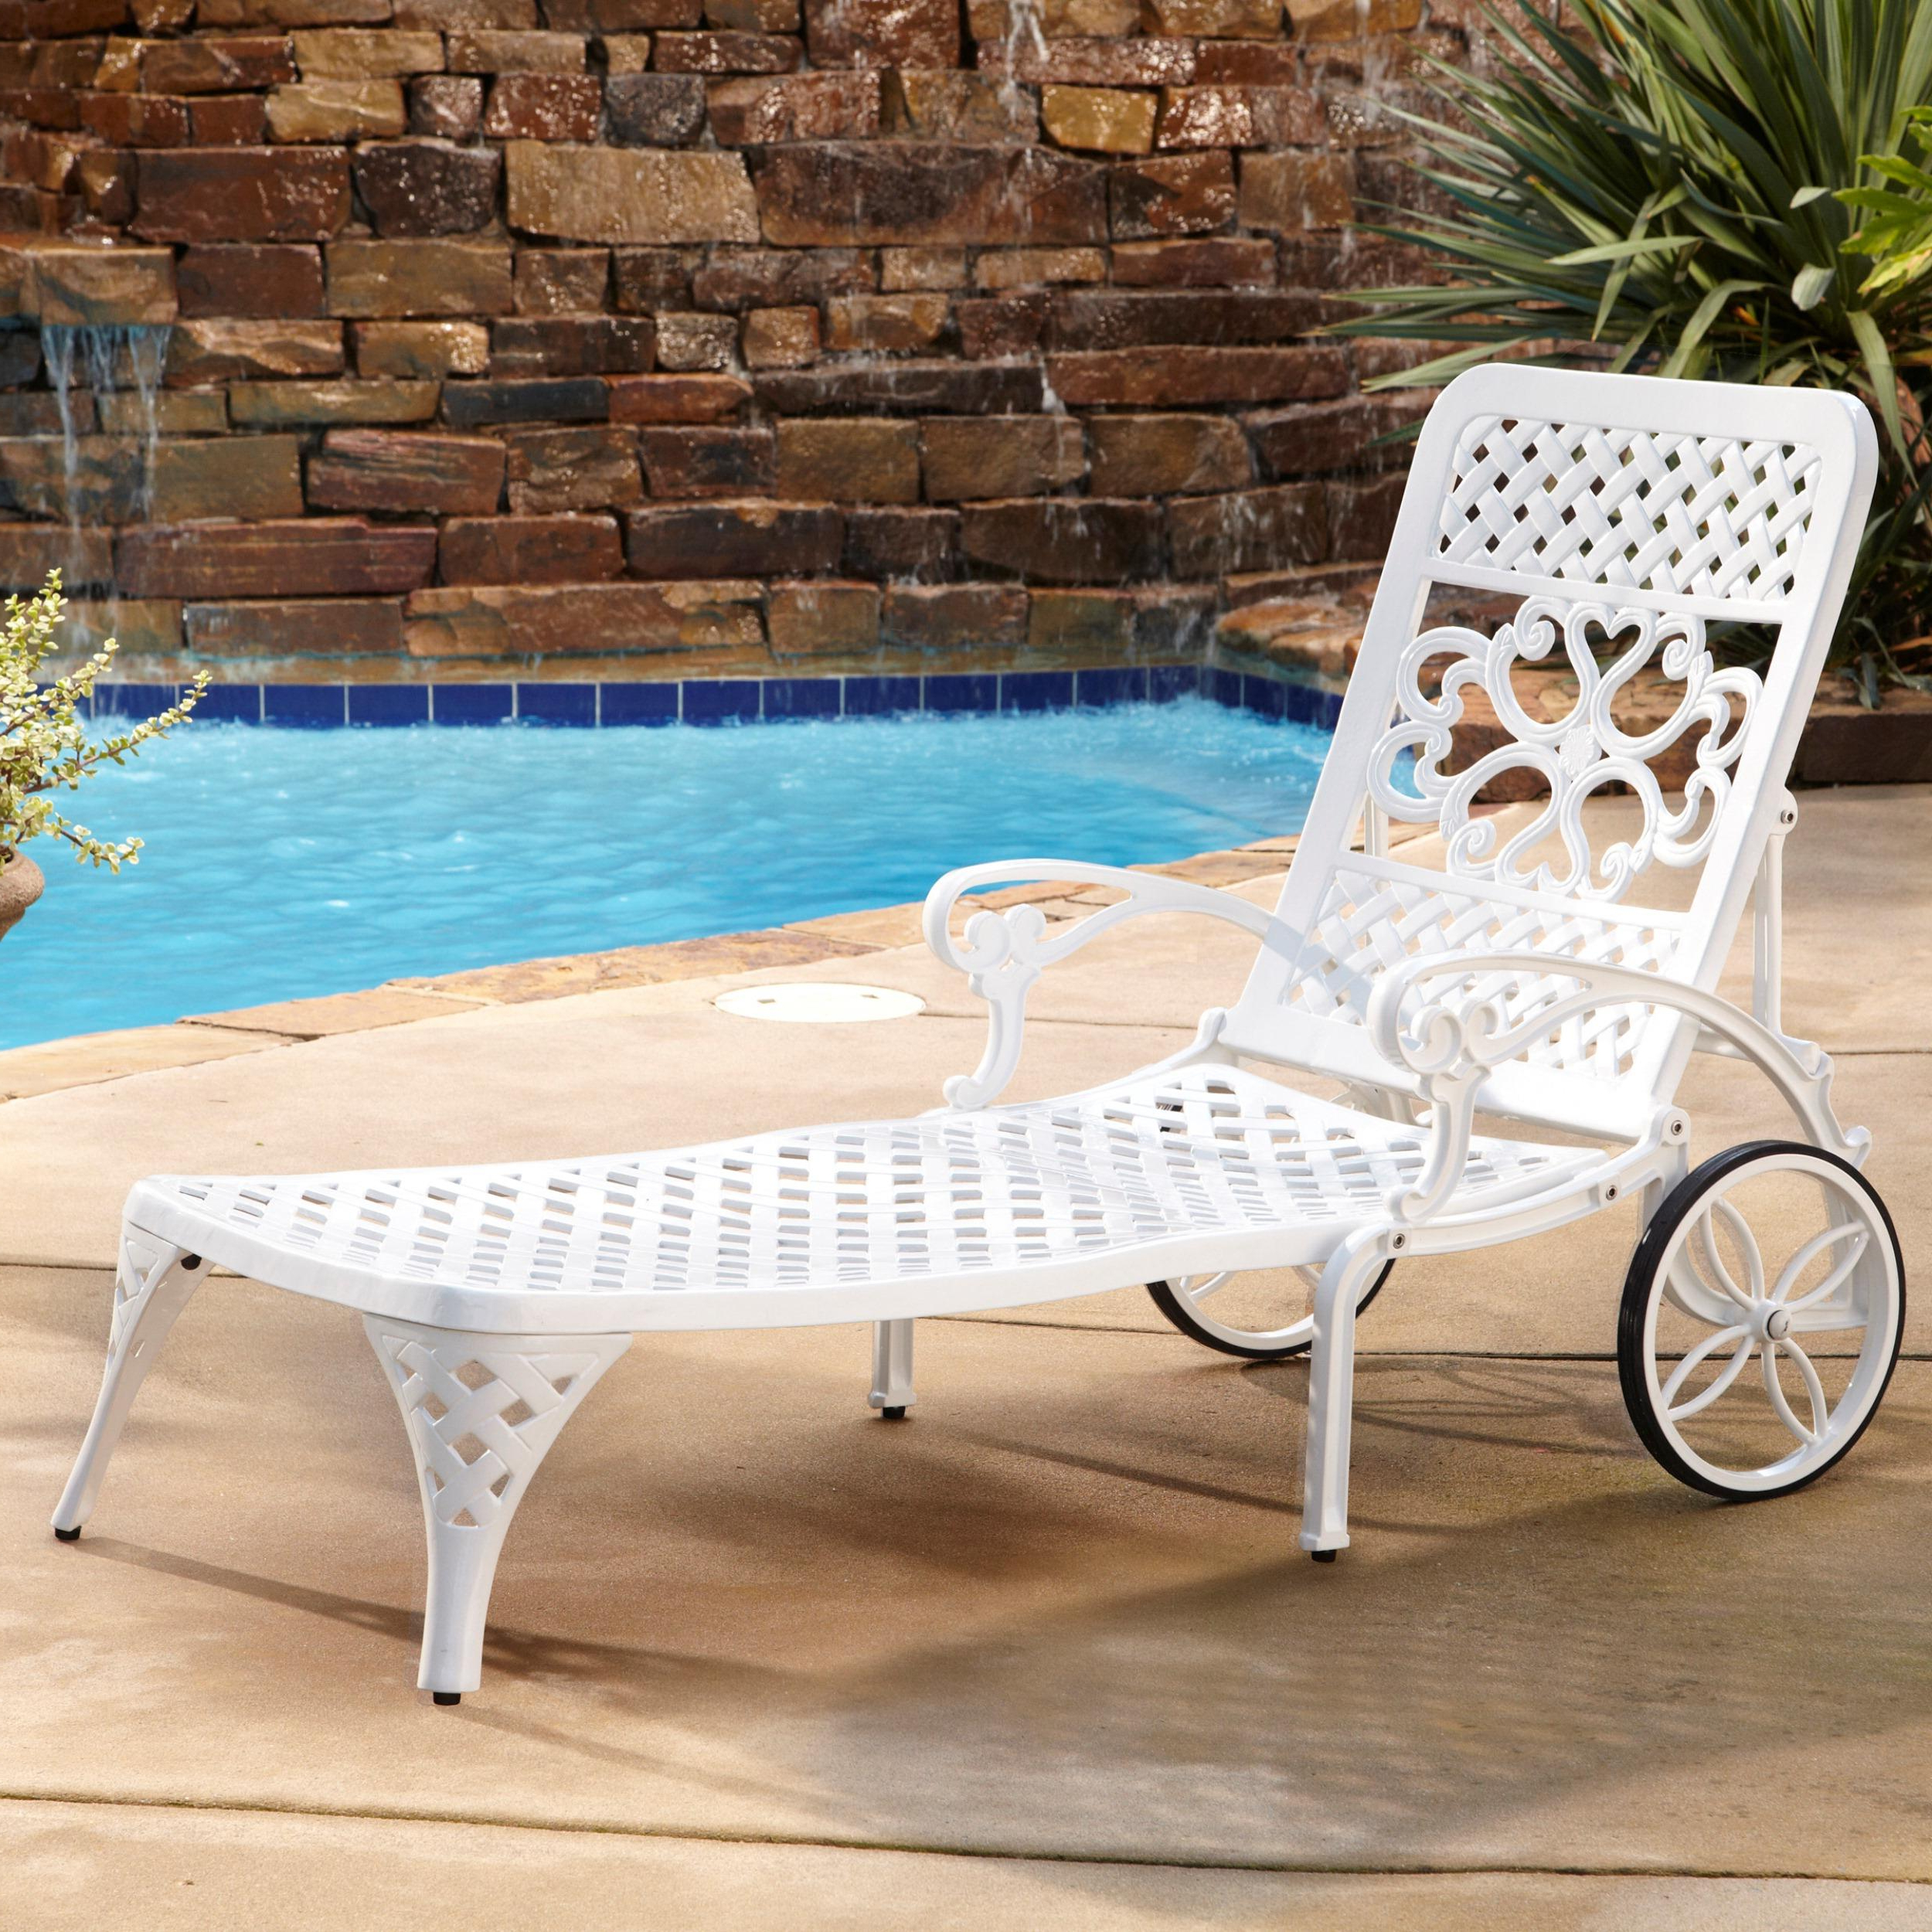 Best And Newest Floral Blossom Chaise Lounge Chairs With Cushion Within Home Styles Biscayne Chaise Lounge Chair, White (View 4 of 25)